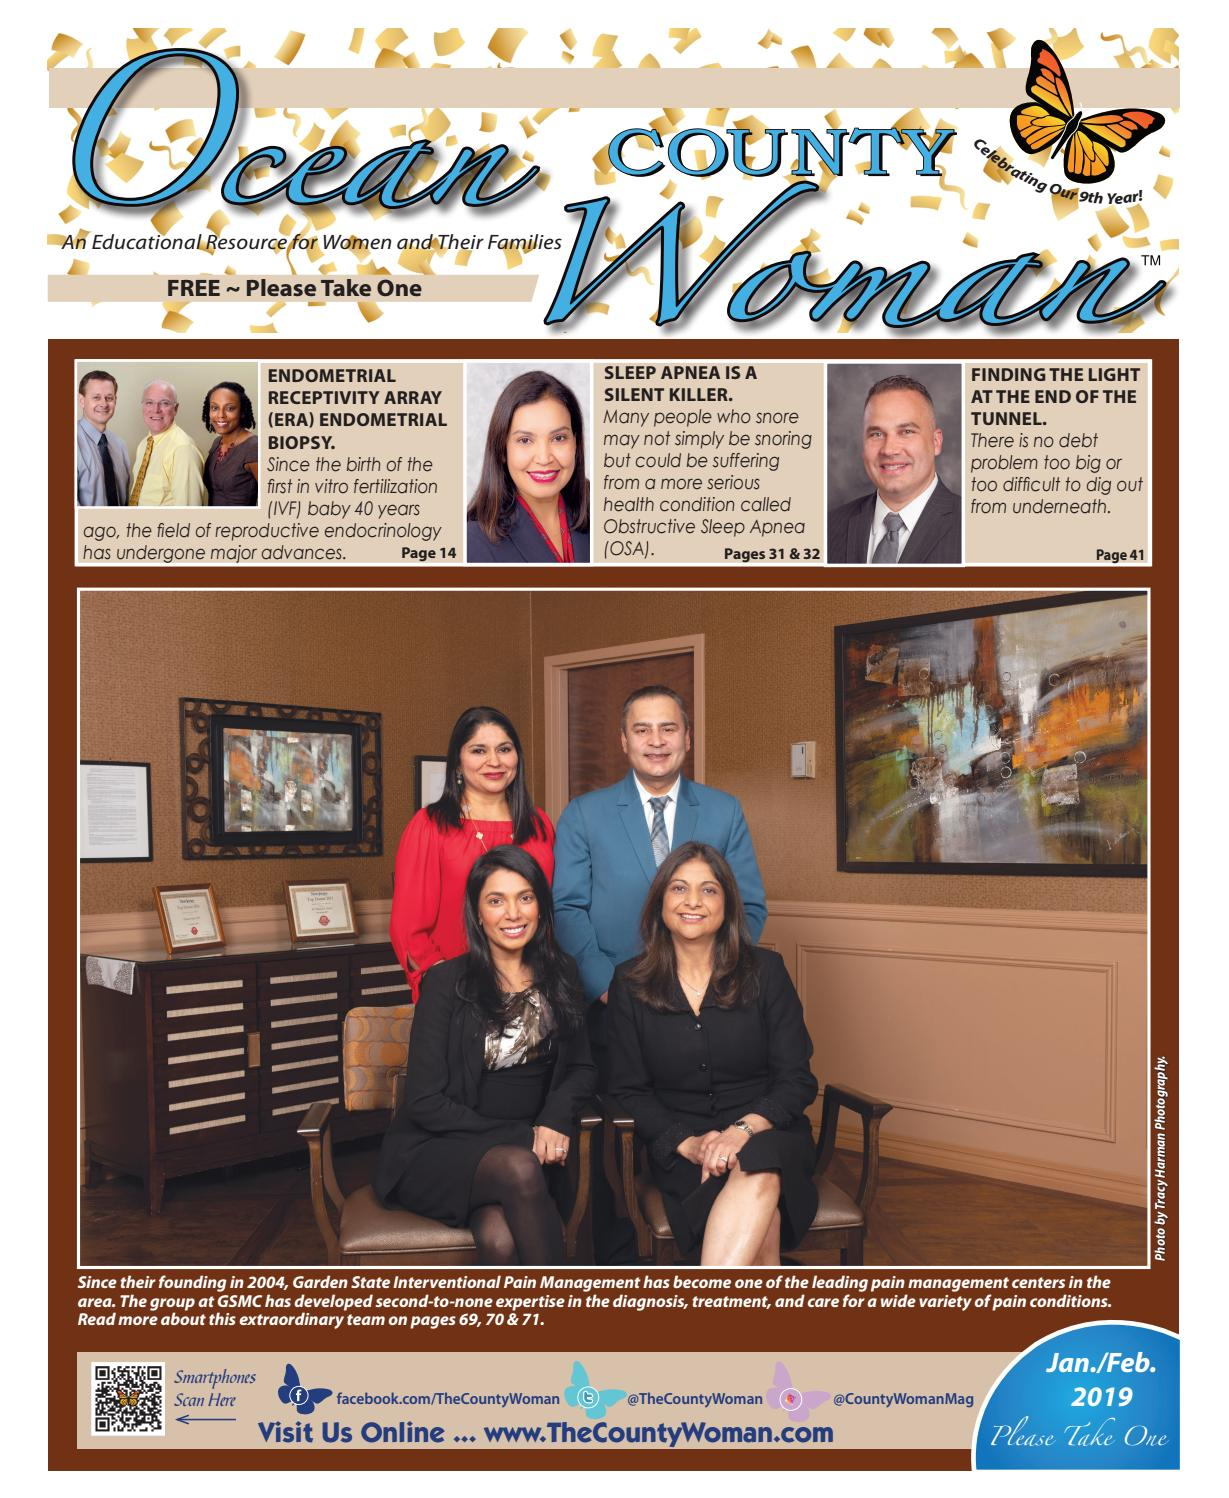 Ocean County Woman - January/February 2018 by The County Woman - issuu